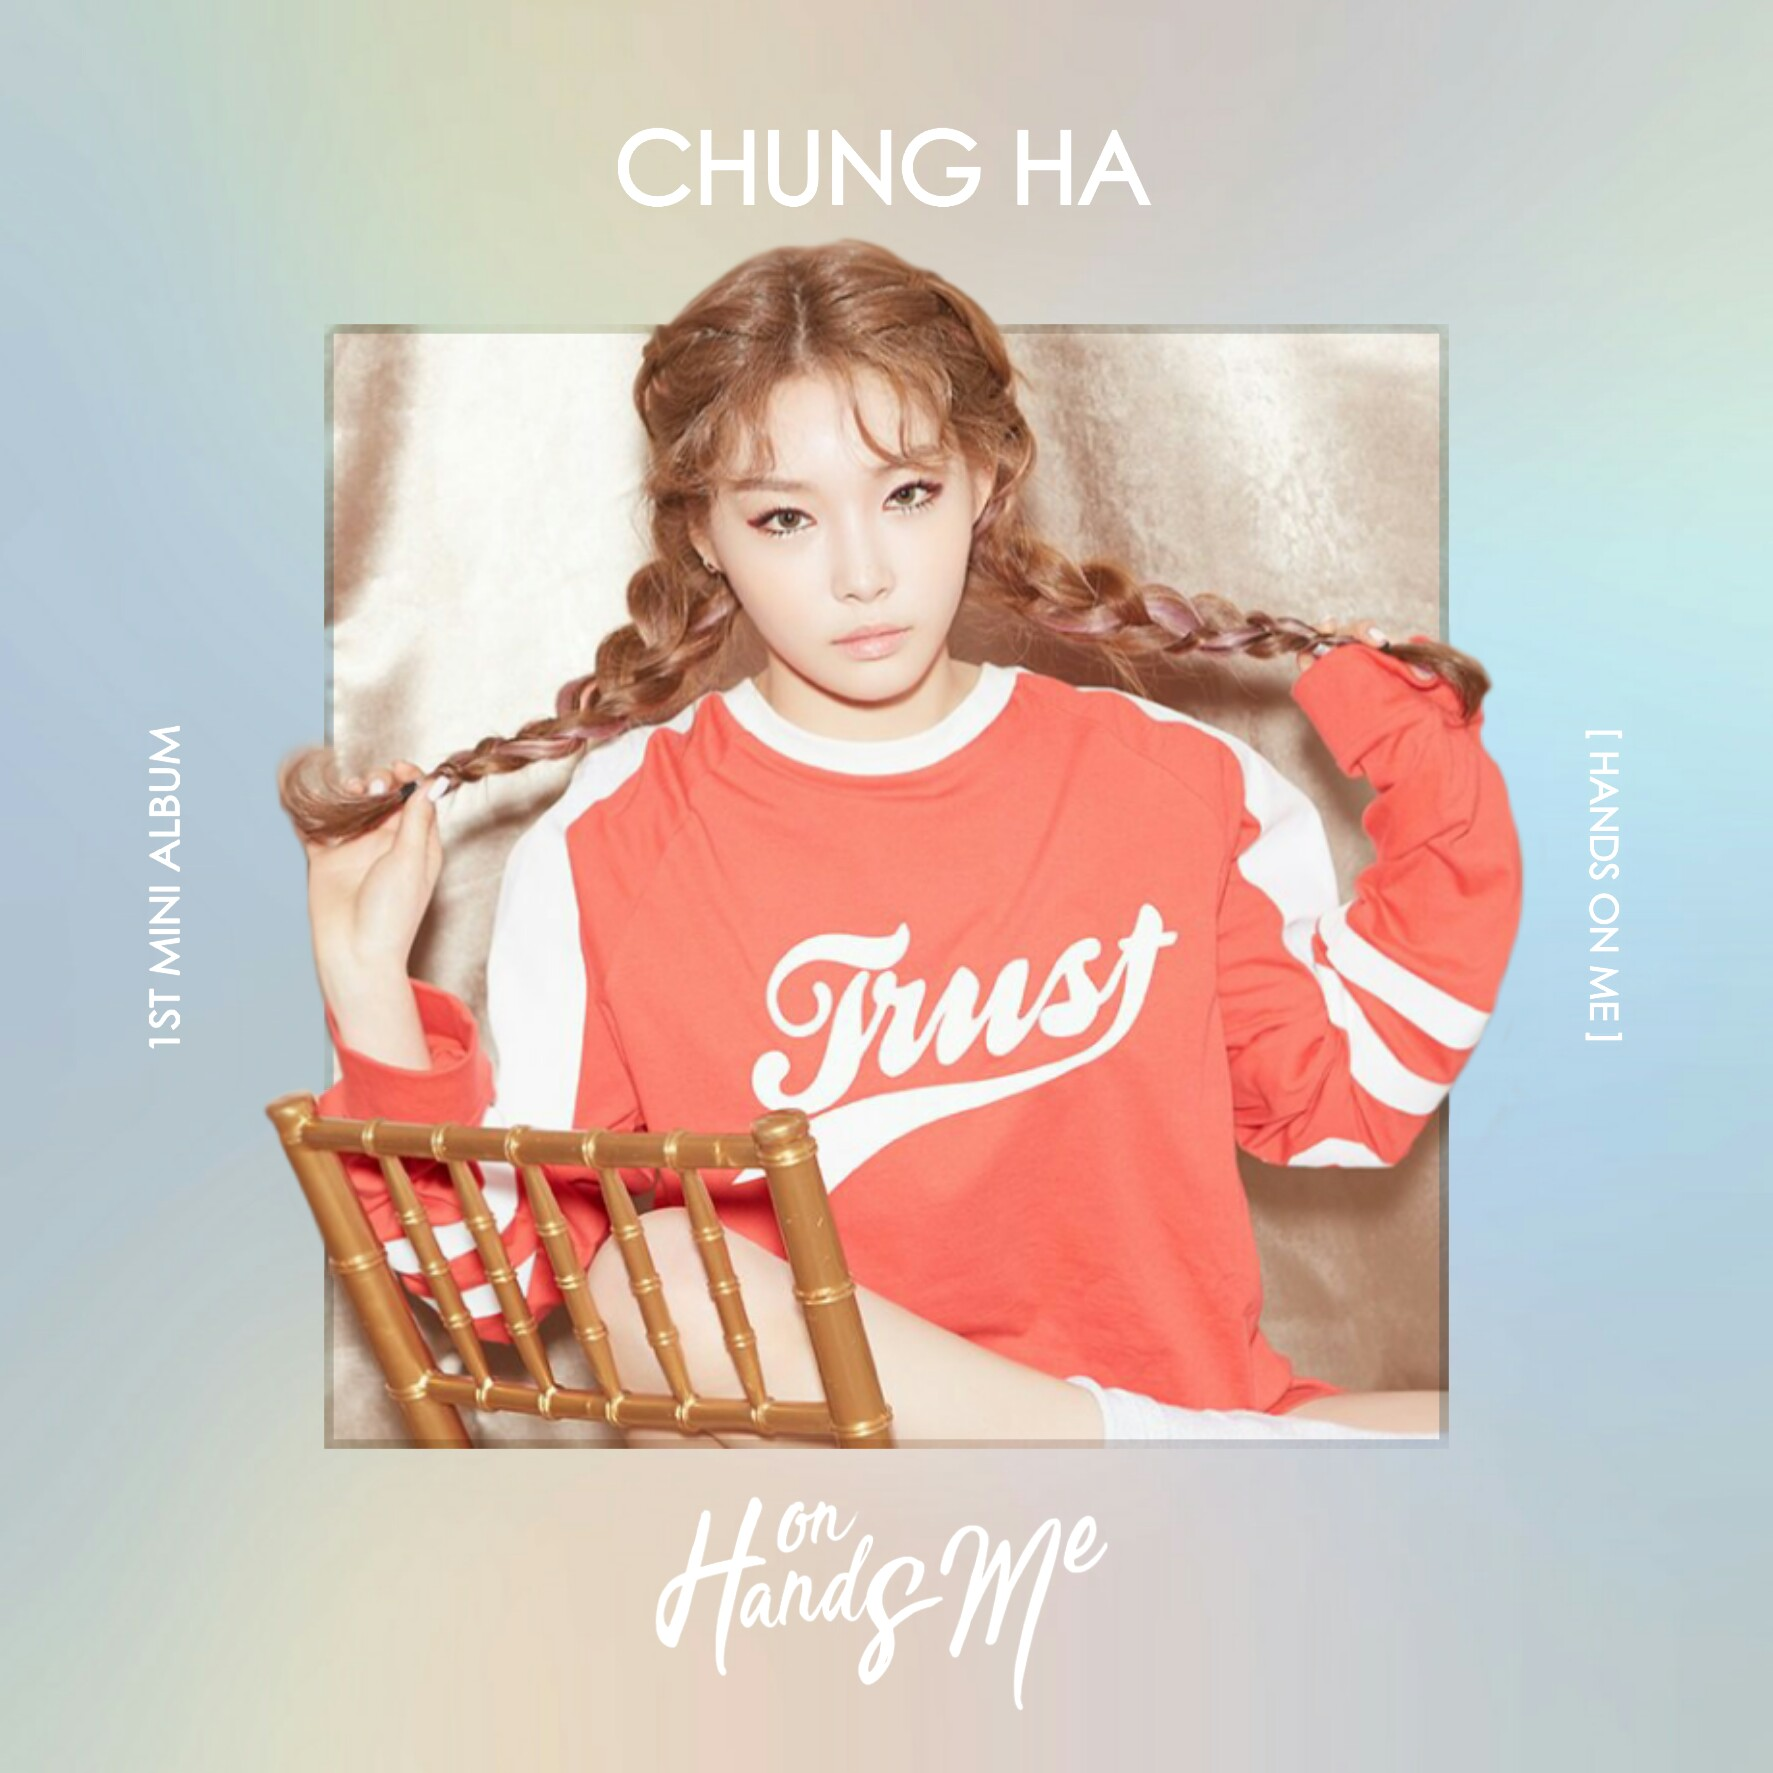 Why Don T You Love Me Post Malone: CHUNGHA WHY DON'T YOU KNOW / HANDS ON ME Album By LEAlbum